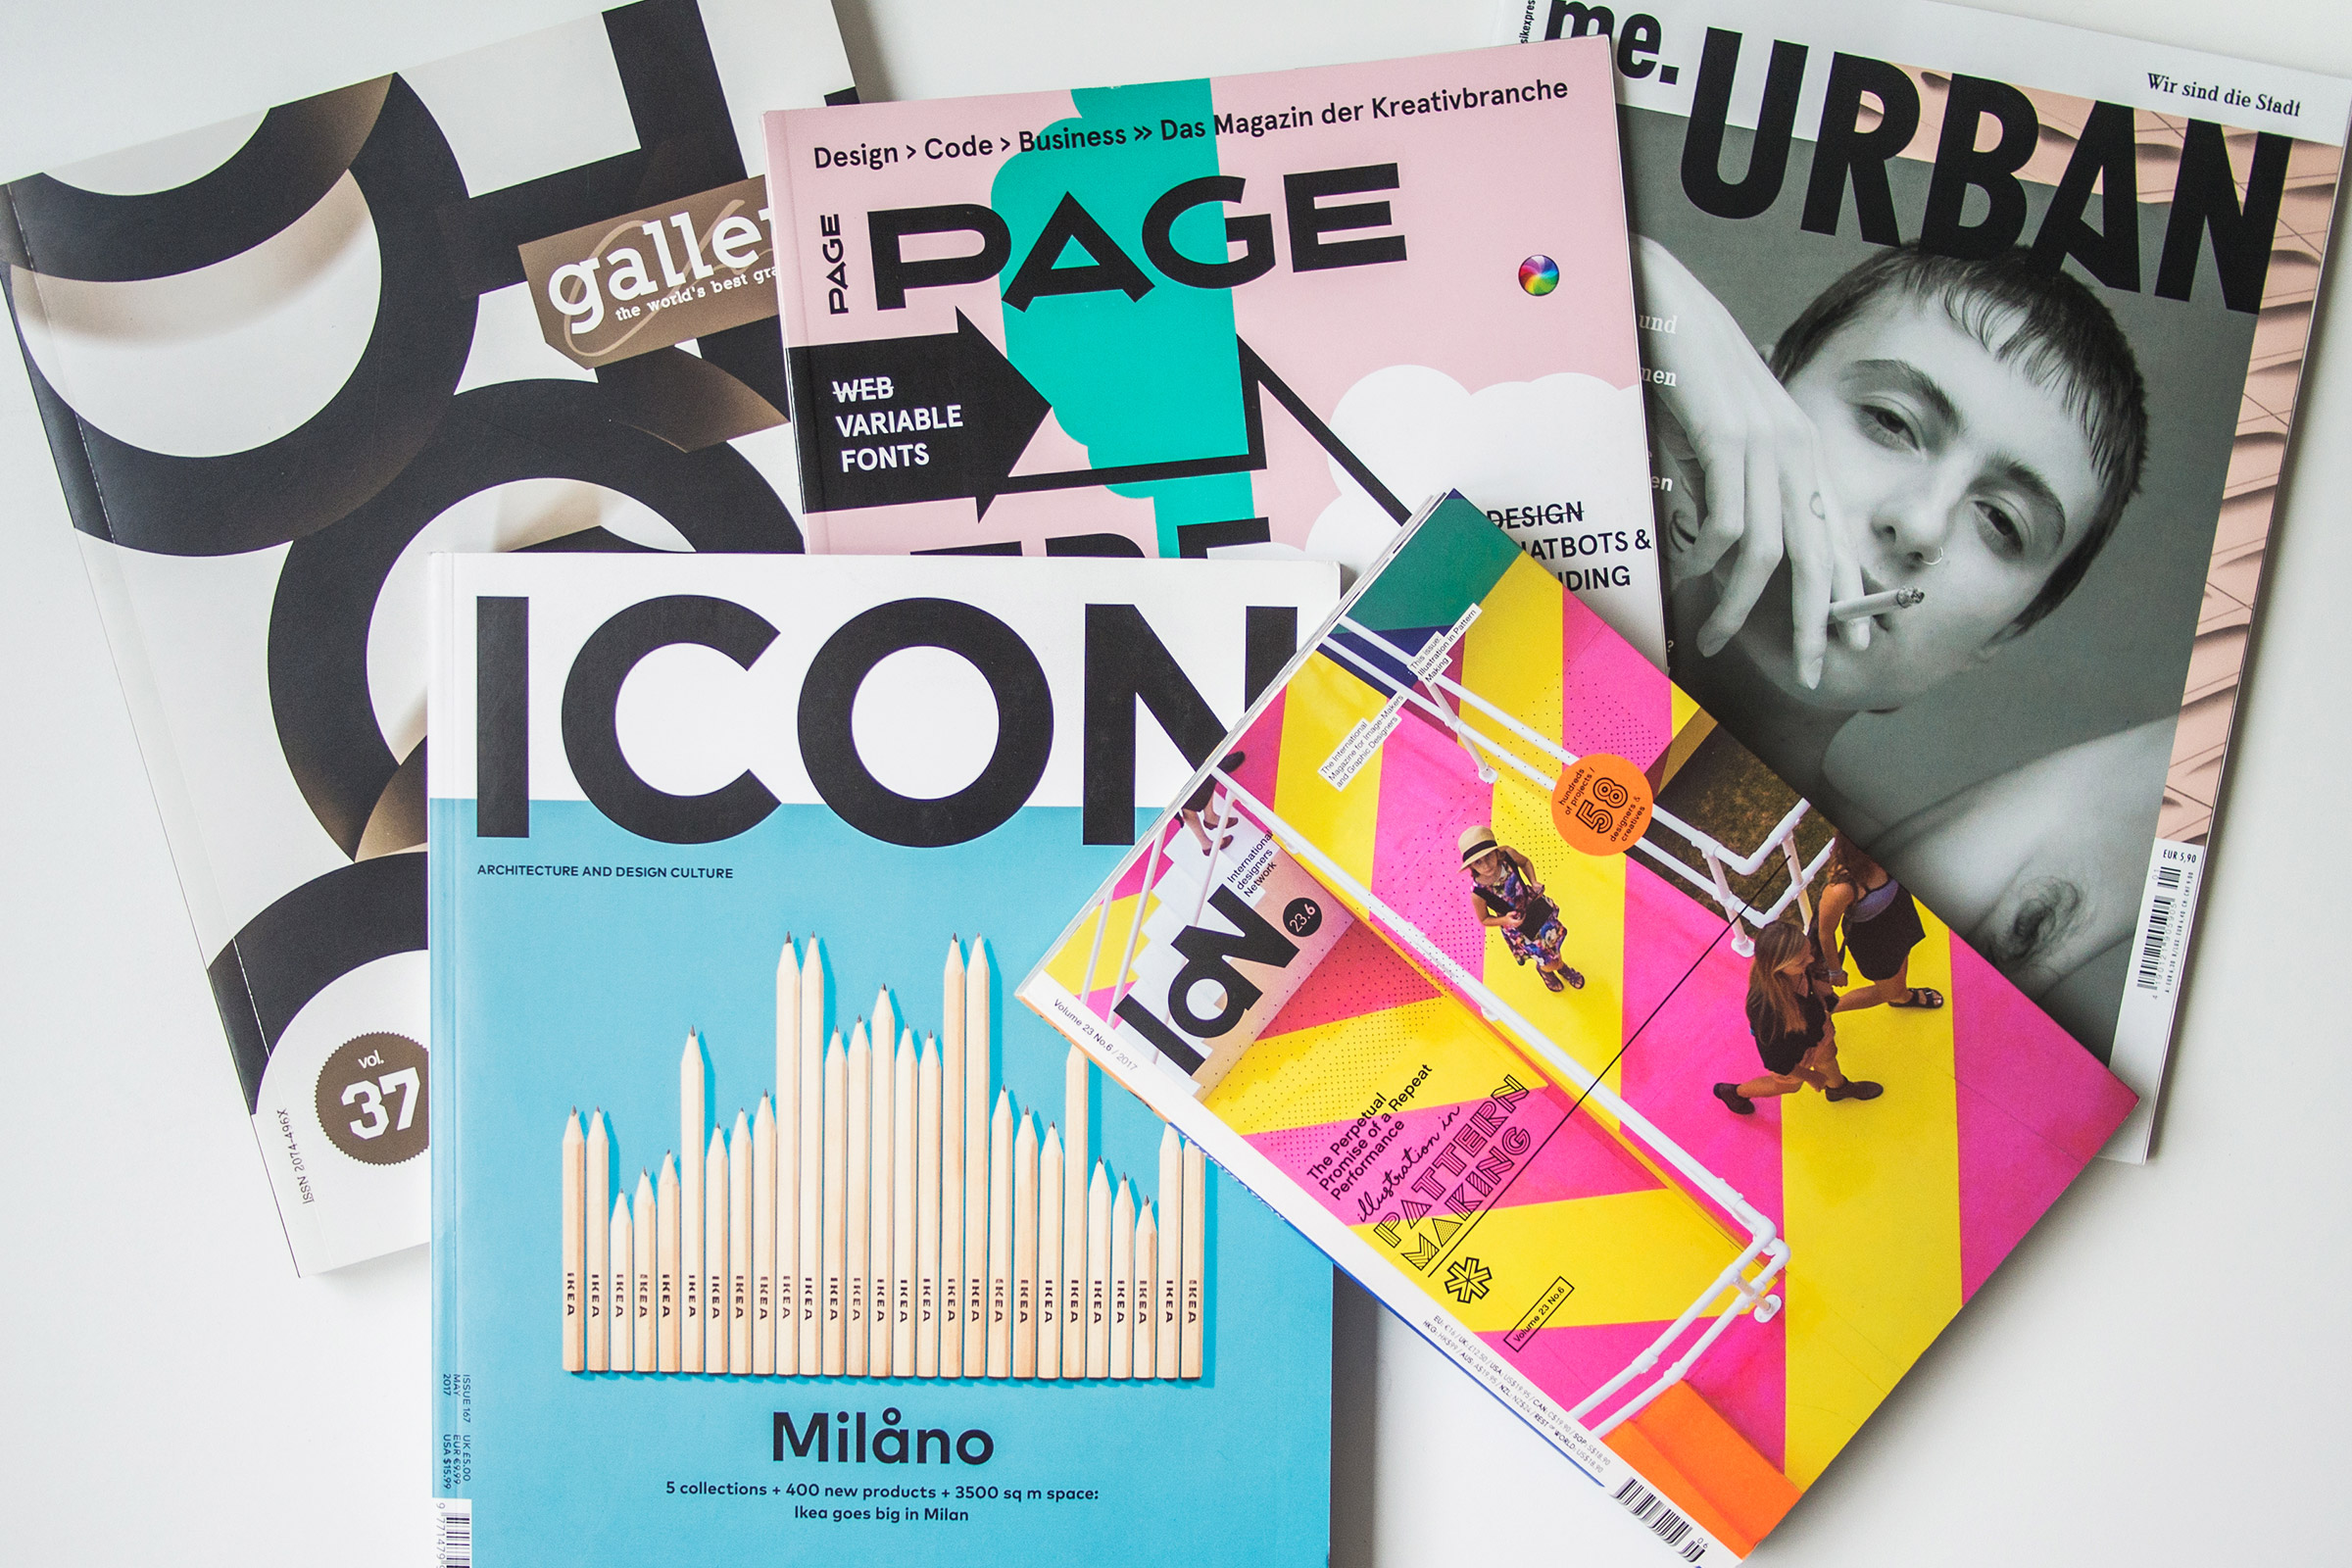 Presse, Publikationen, Magazine, me.urban, Page, Icon, Chois Gallery, IdN